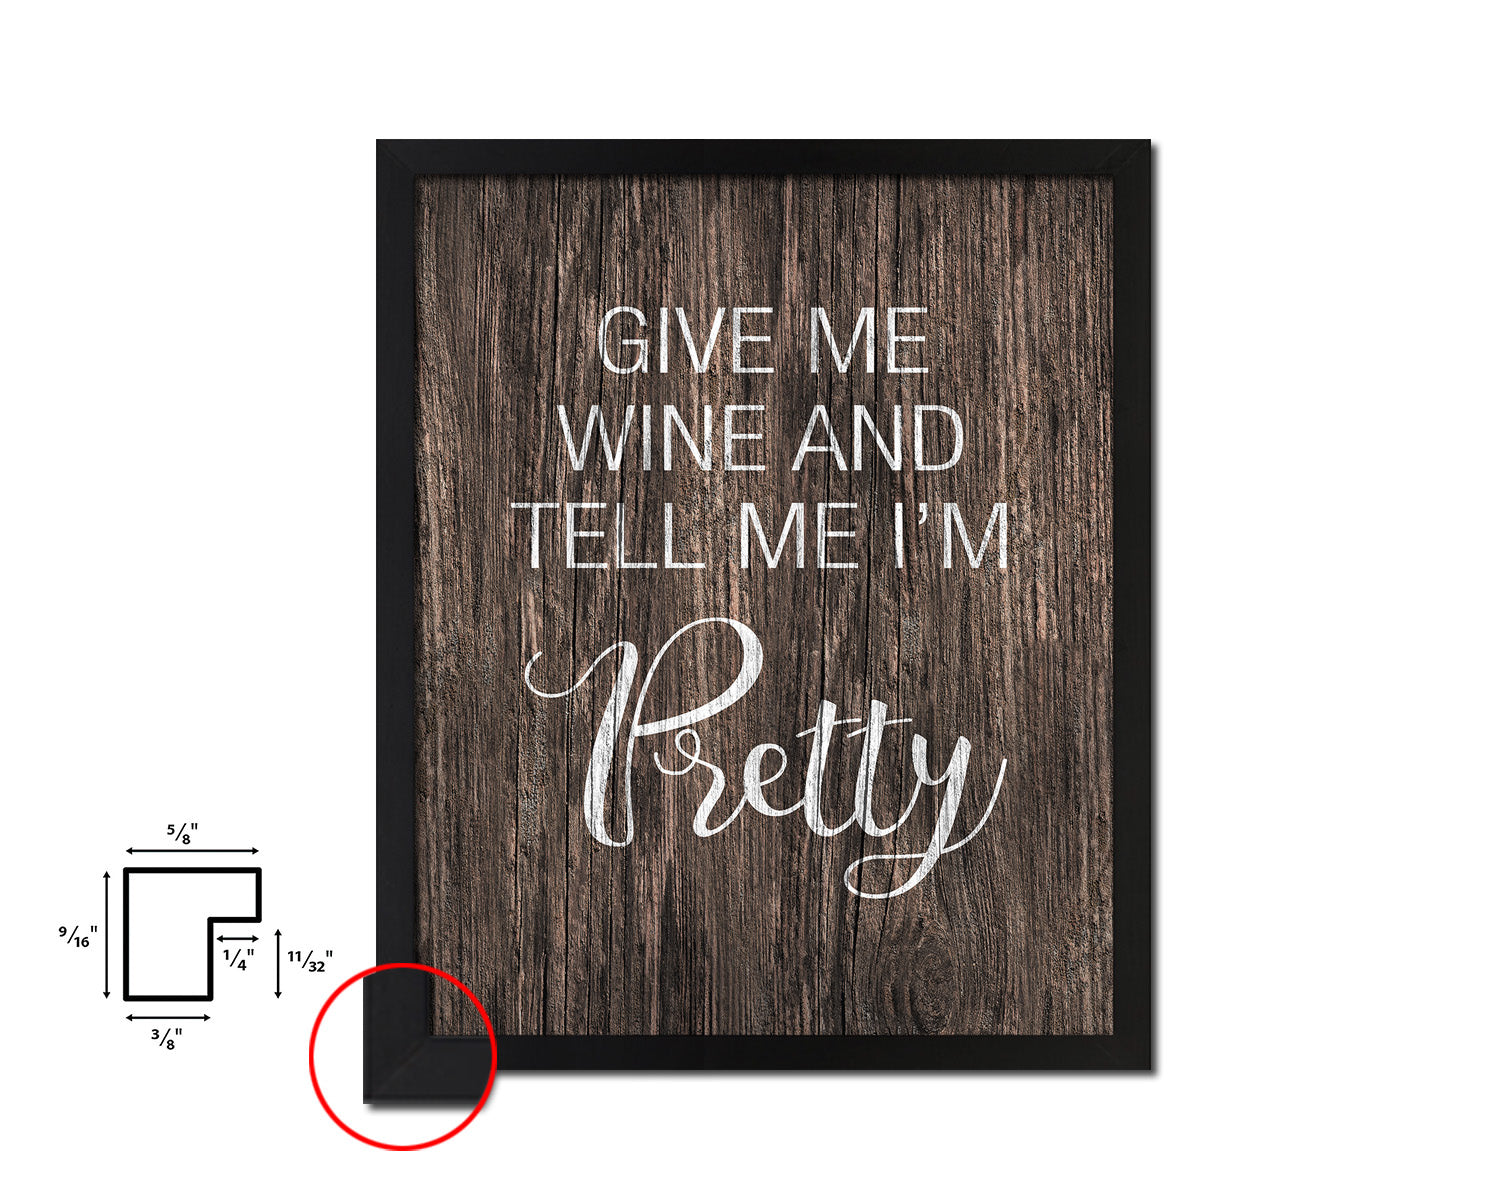 Give me wine and tell me I'm pretty Quotes Framed Print Home Decor Wall Art Gifts